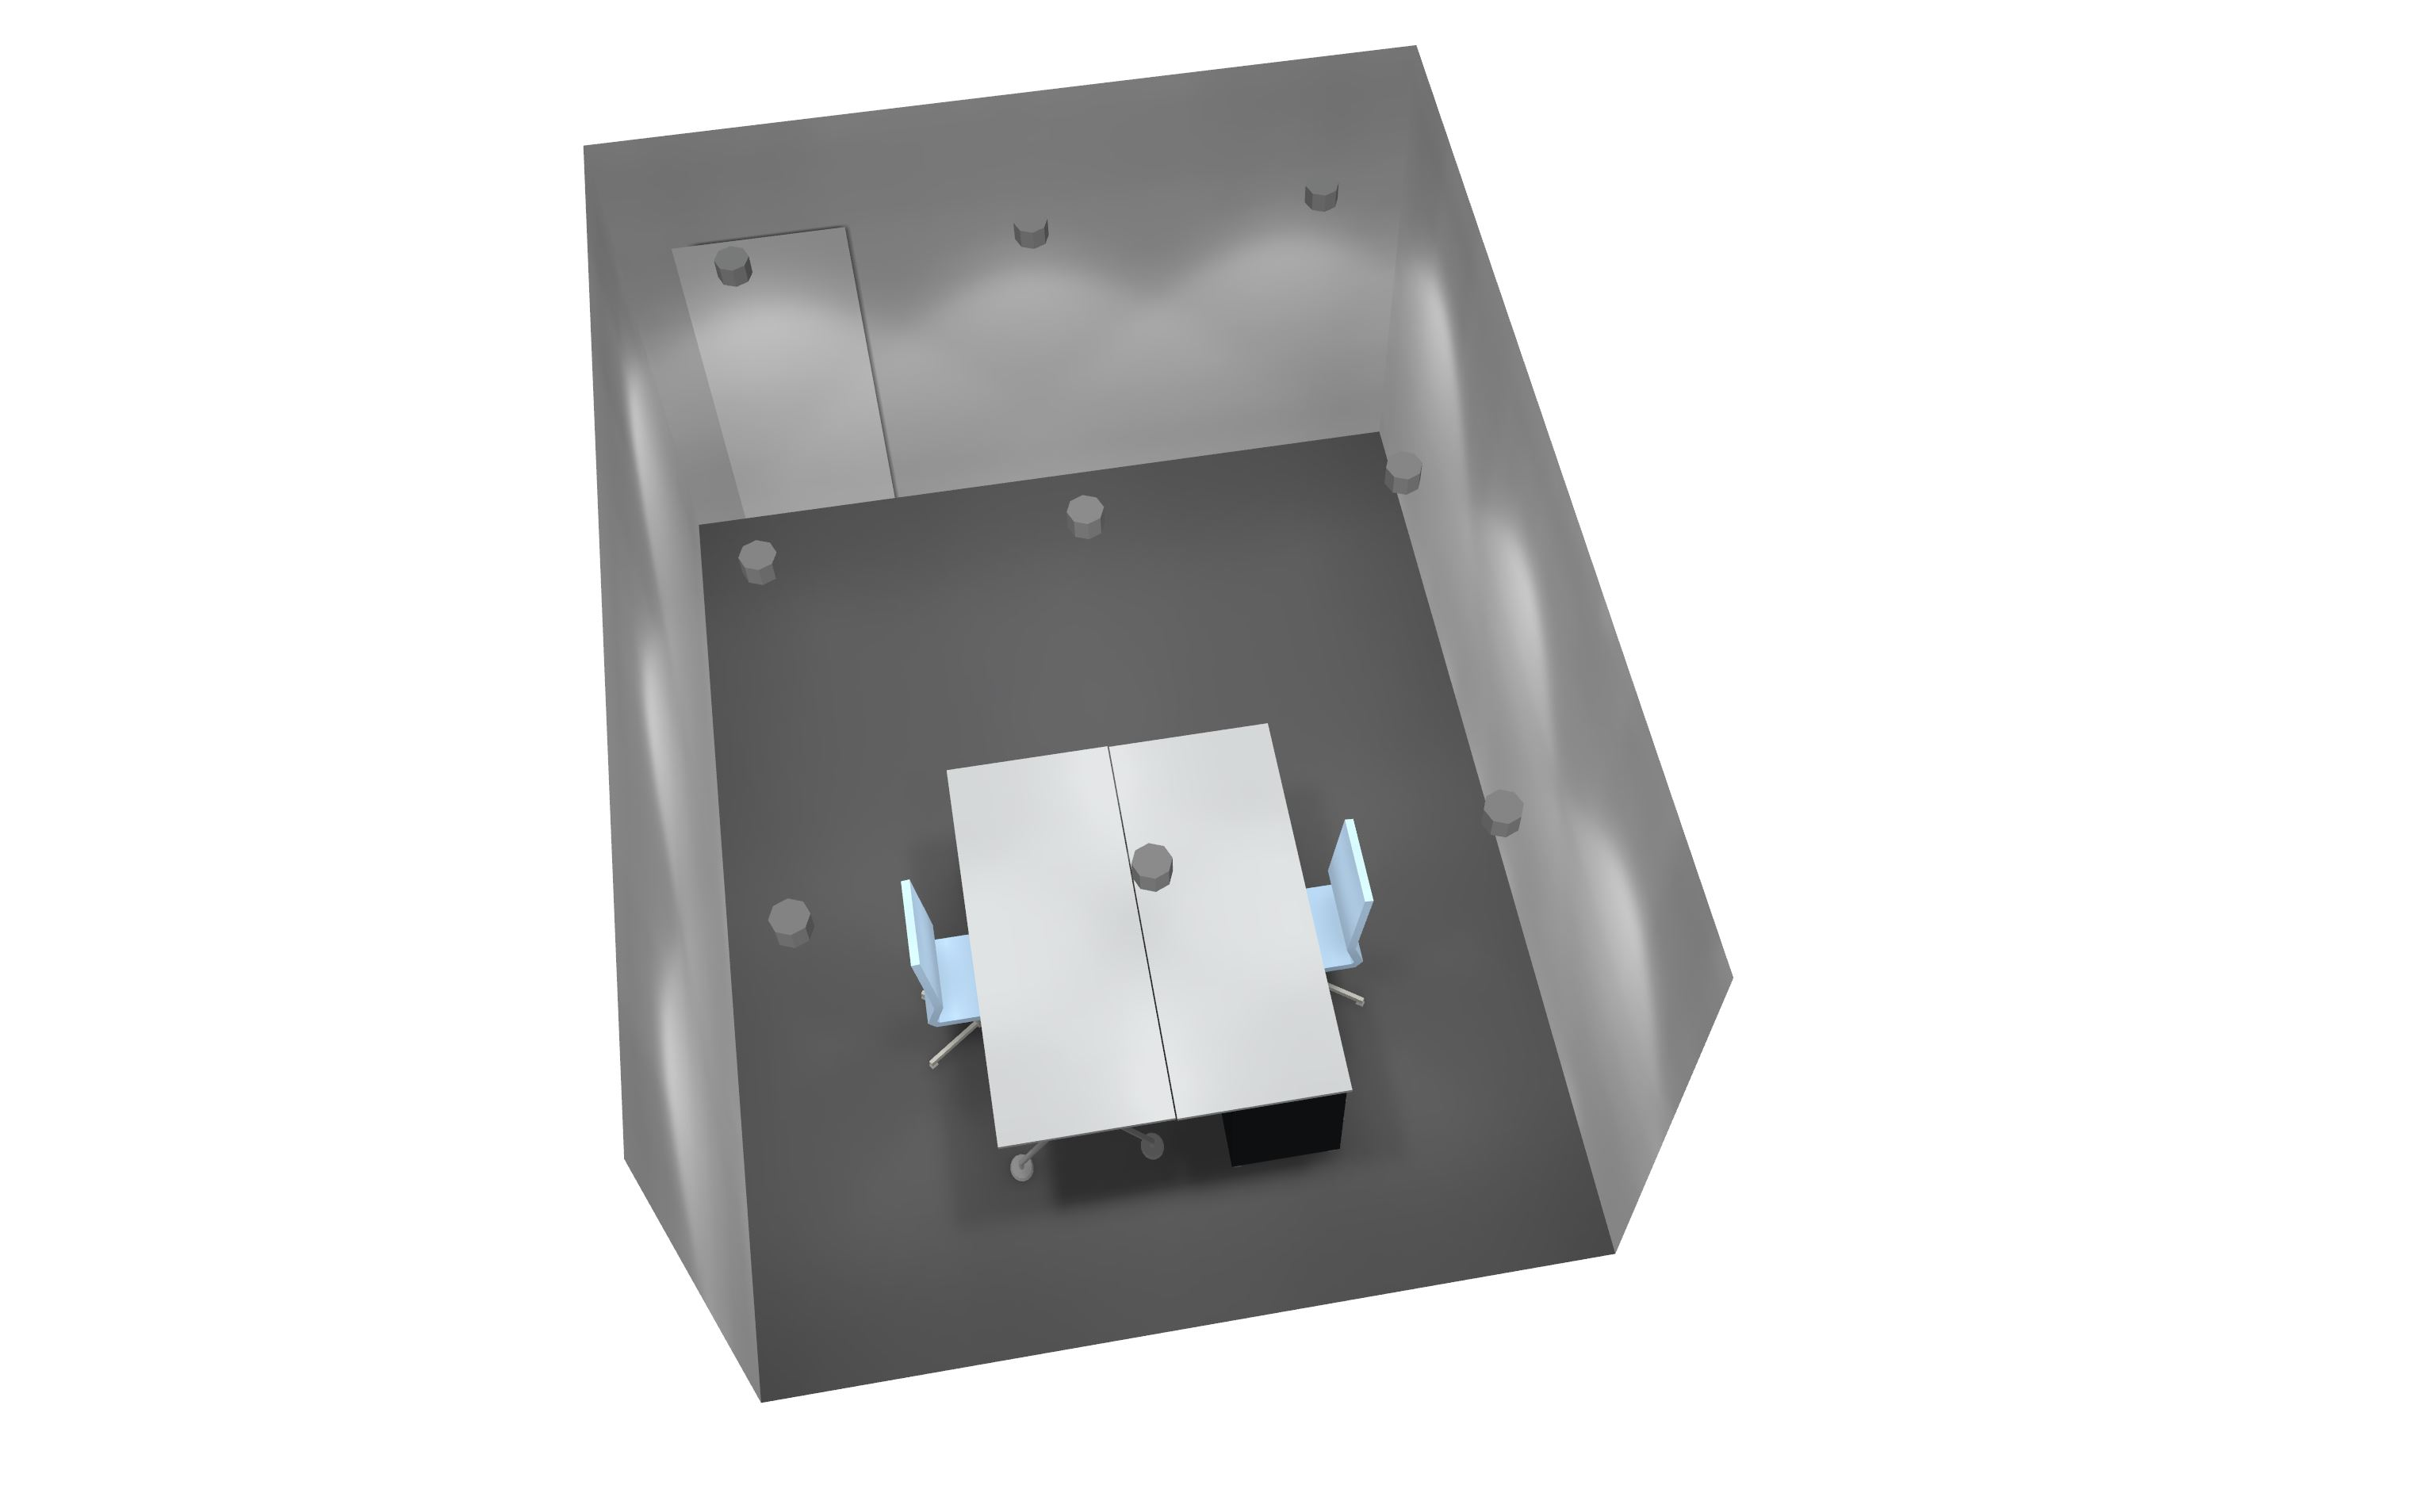 Planungshilfe LED Beleuchtung LED Downlight in Bandraster 3 Achsen